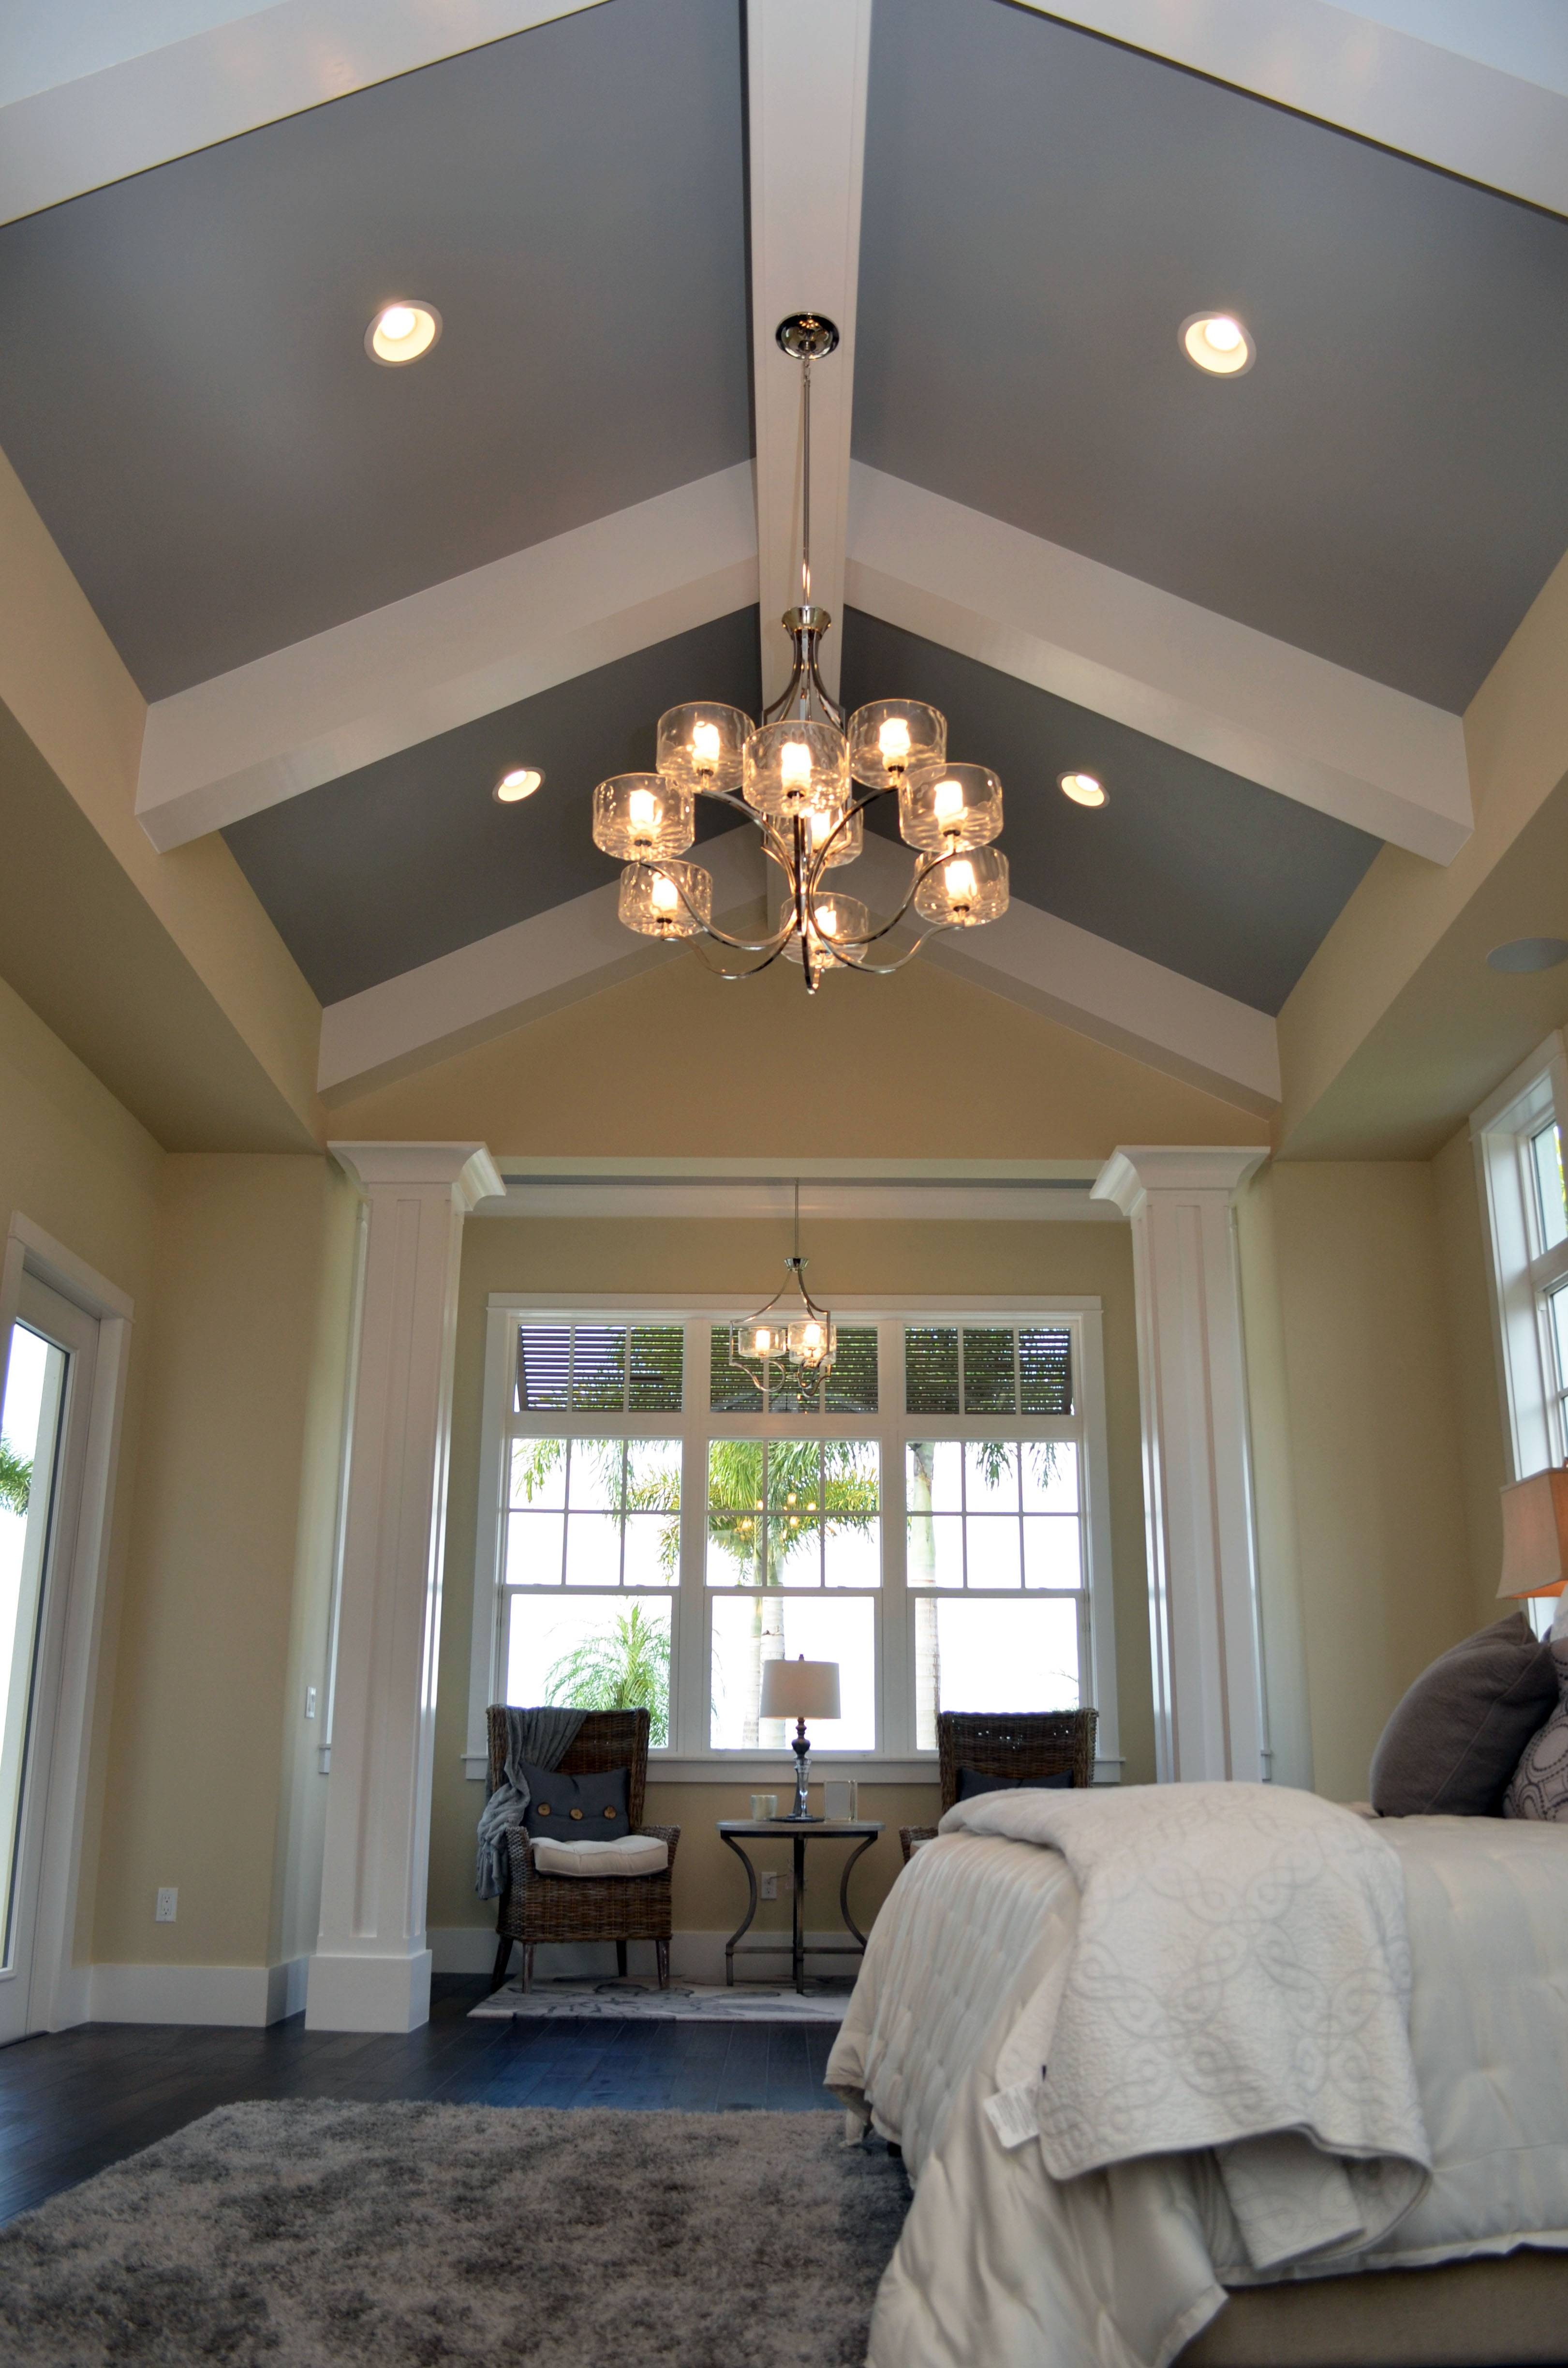 Bathroom Lighting Ideas On Sloped Ceiling – Interiordesignew Throughout Sloped Ceiling Pendant Lights (View 3 of 15)